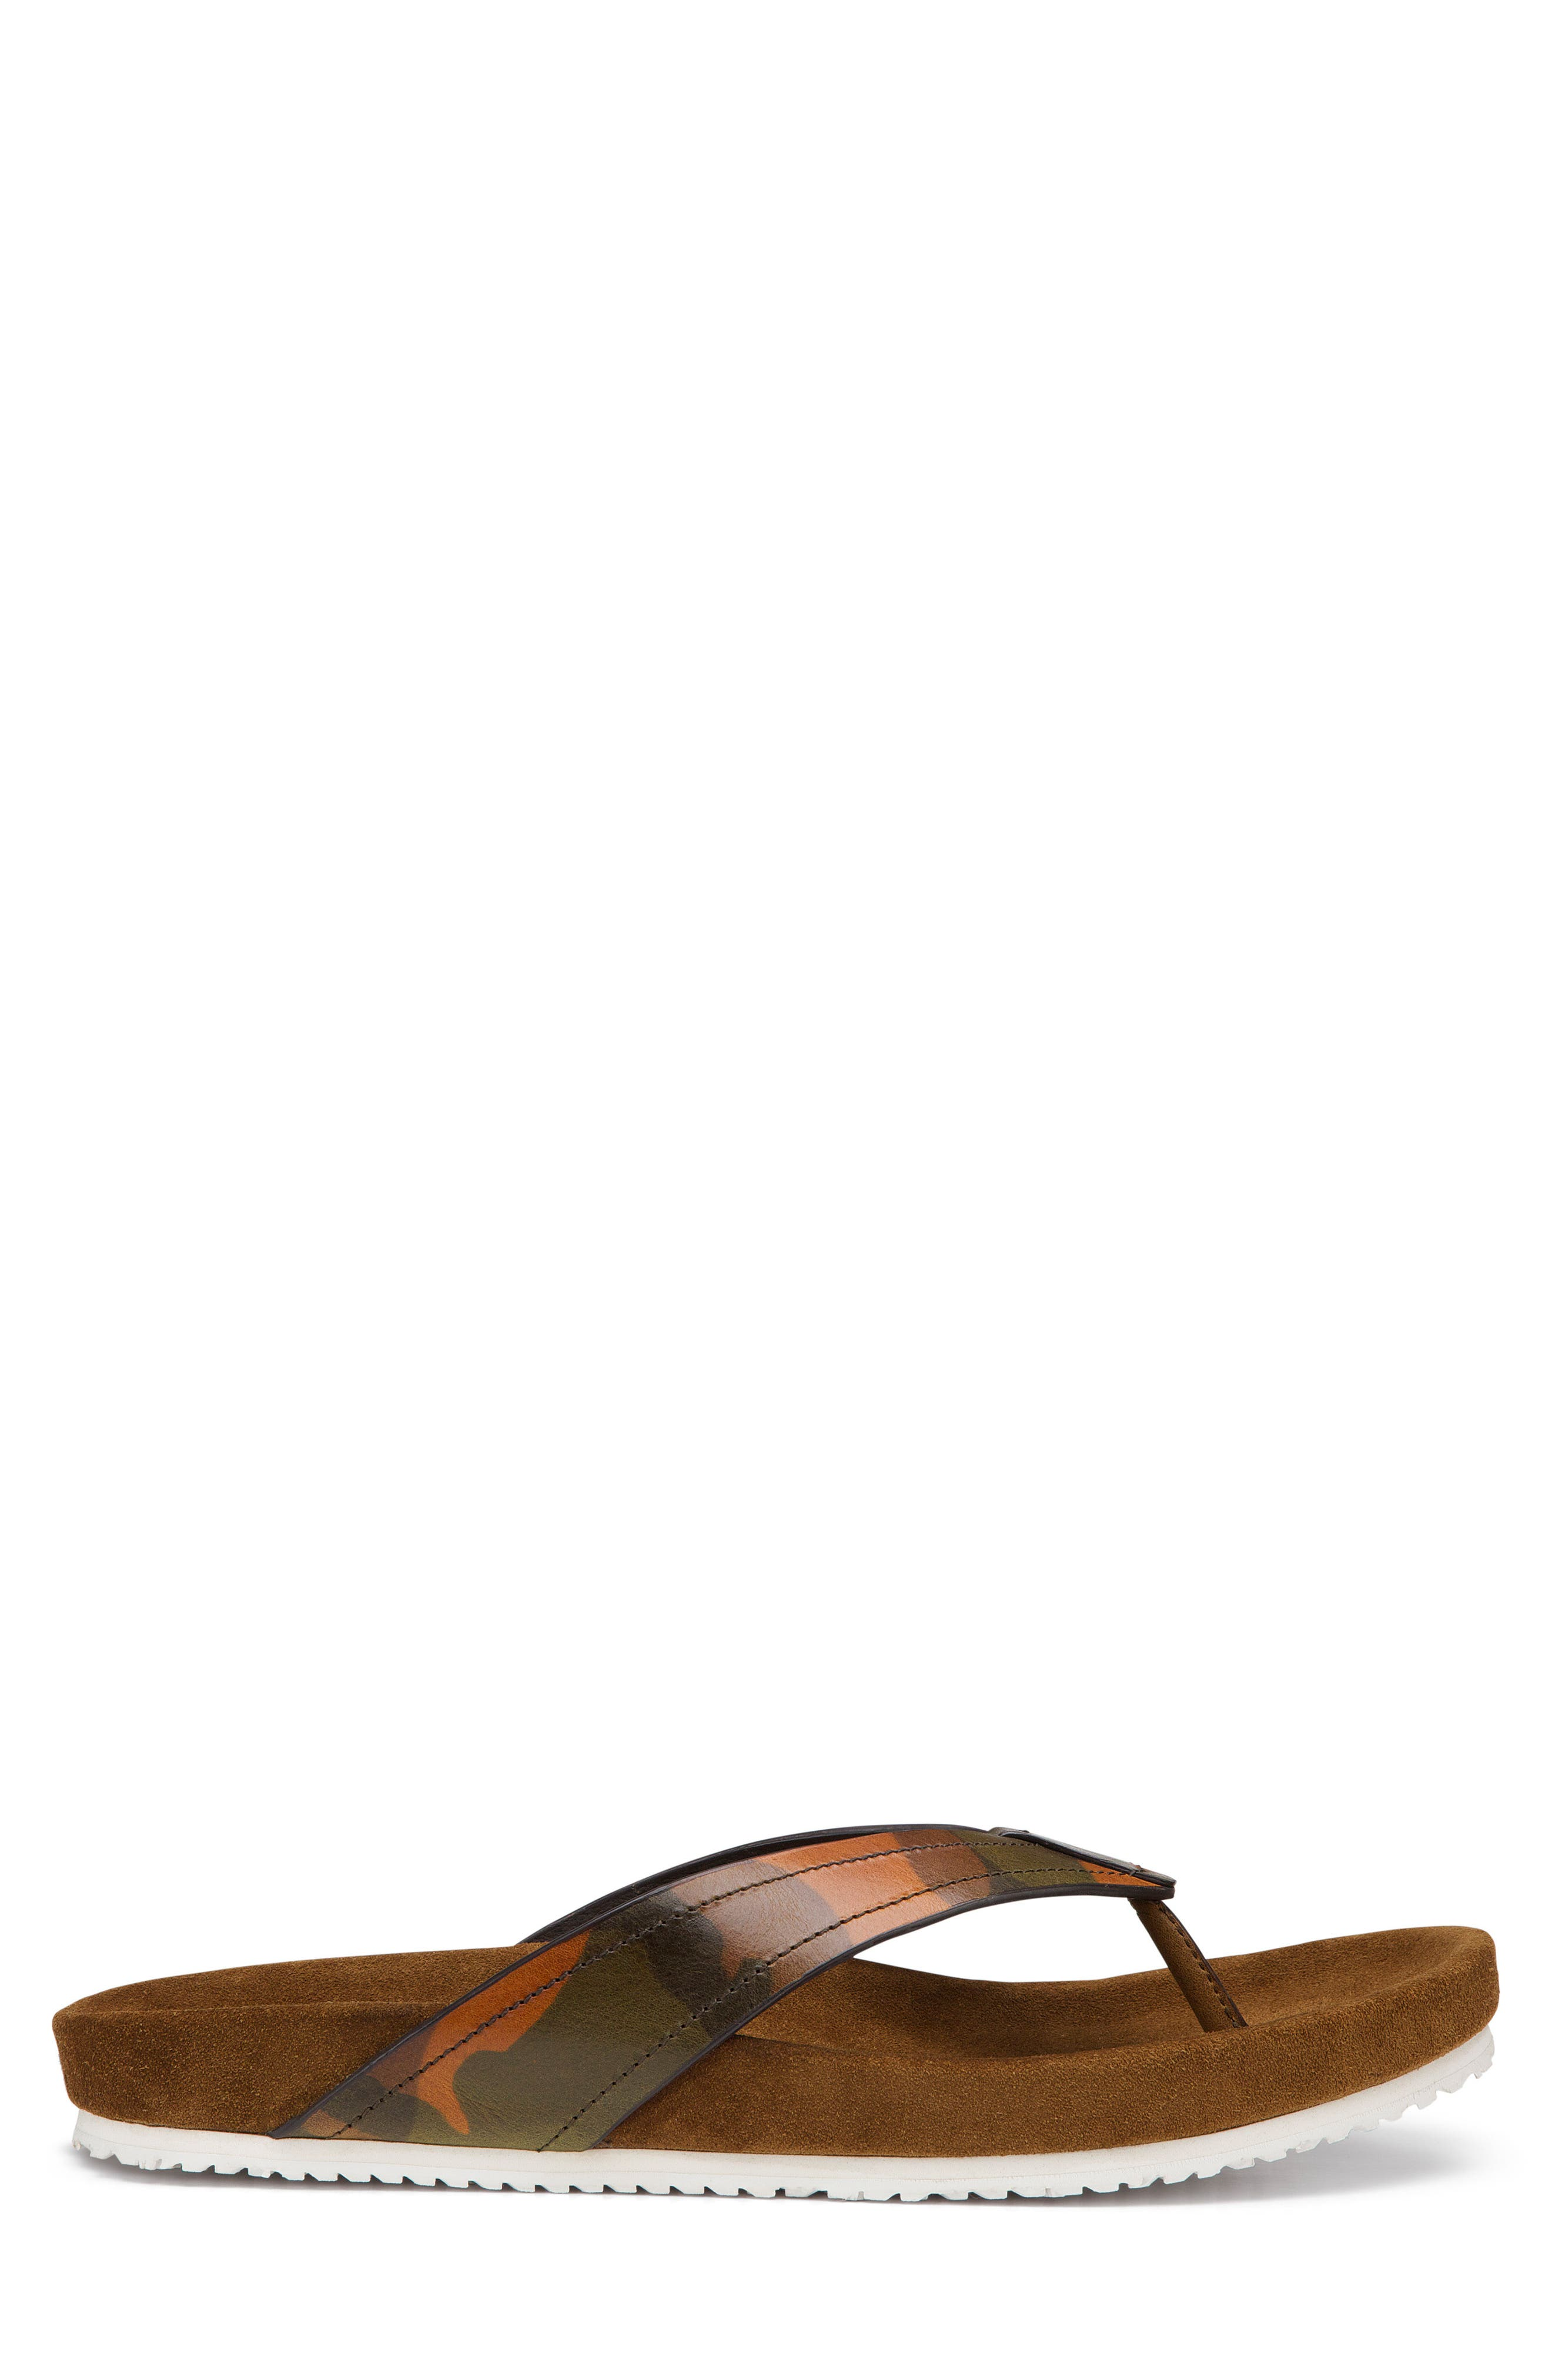 Fleming Flip Flop,                             Alternate thumbnail 3, color,                             CAMOFLAGE LEATHER